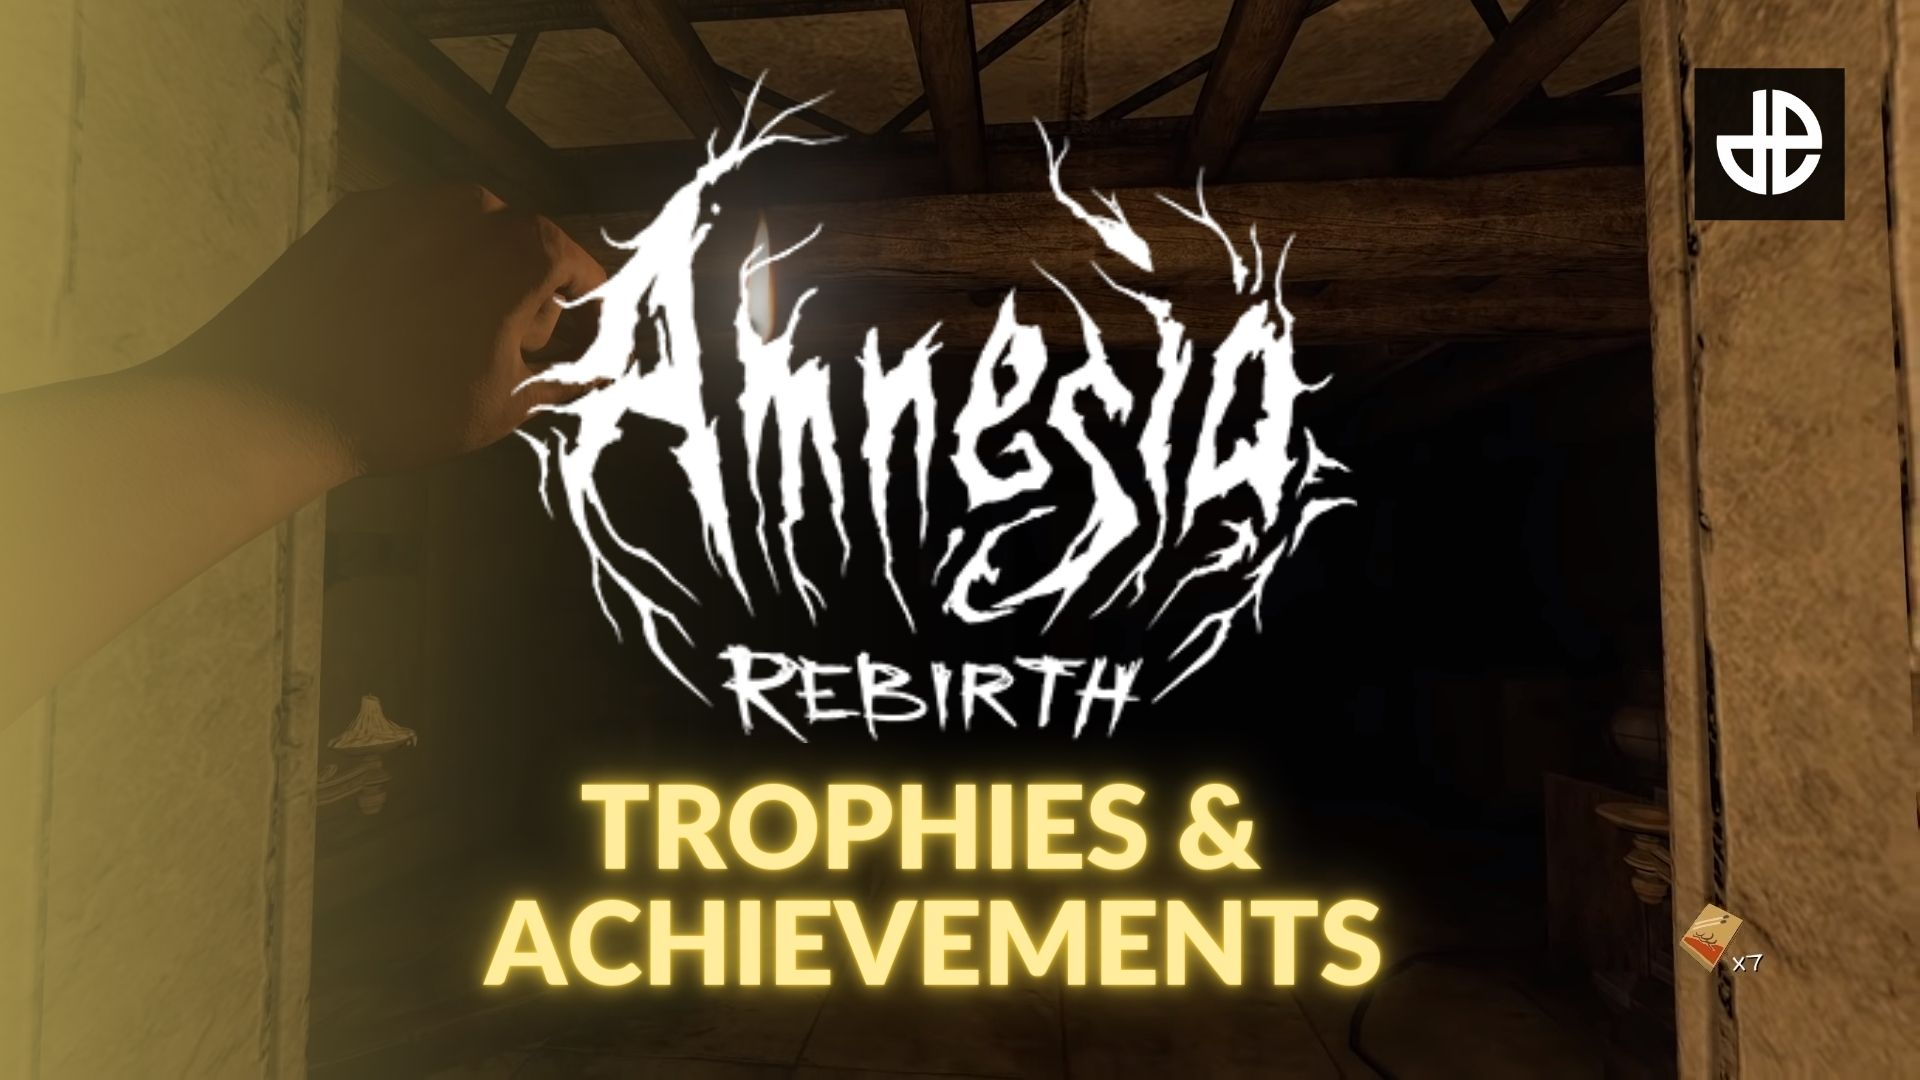 The Amnesia: Rebirth logo